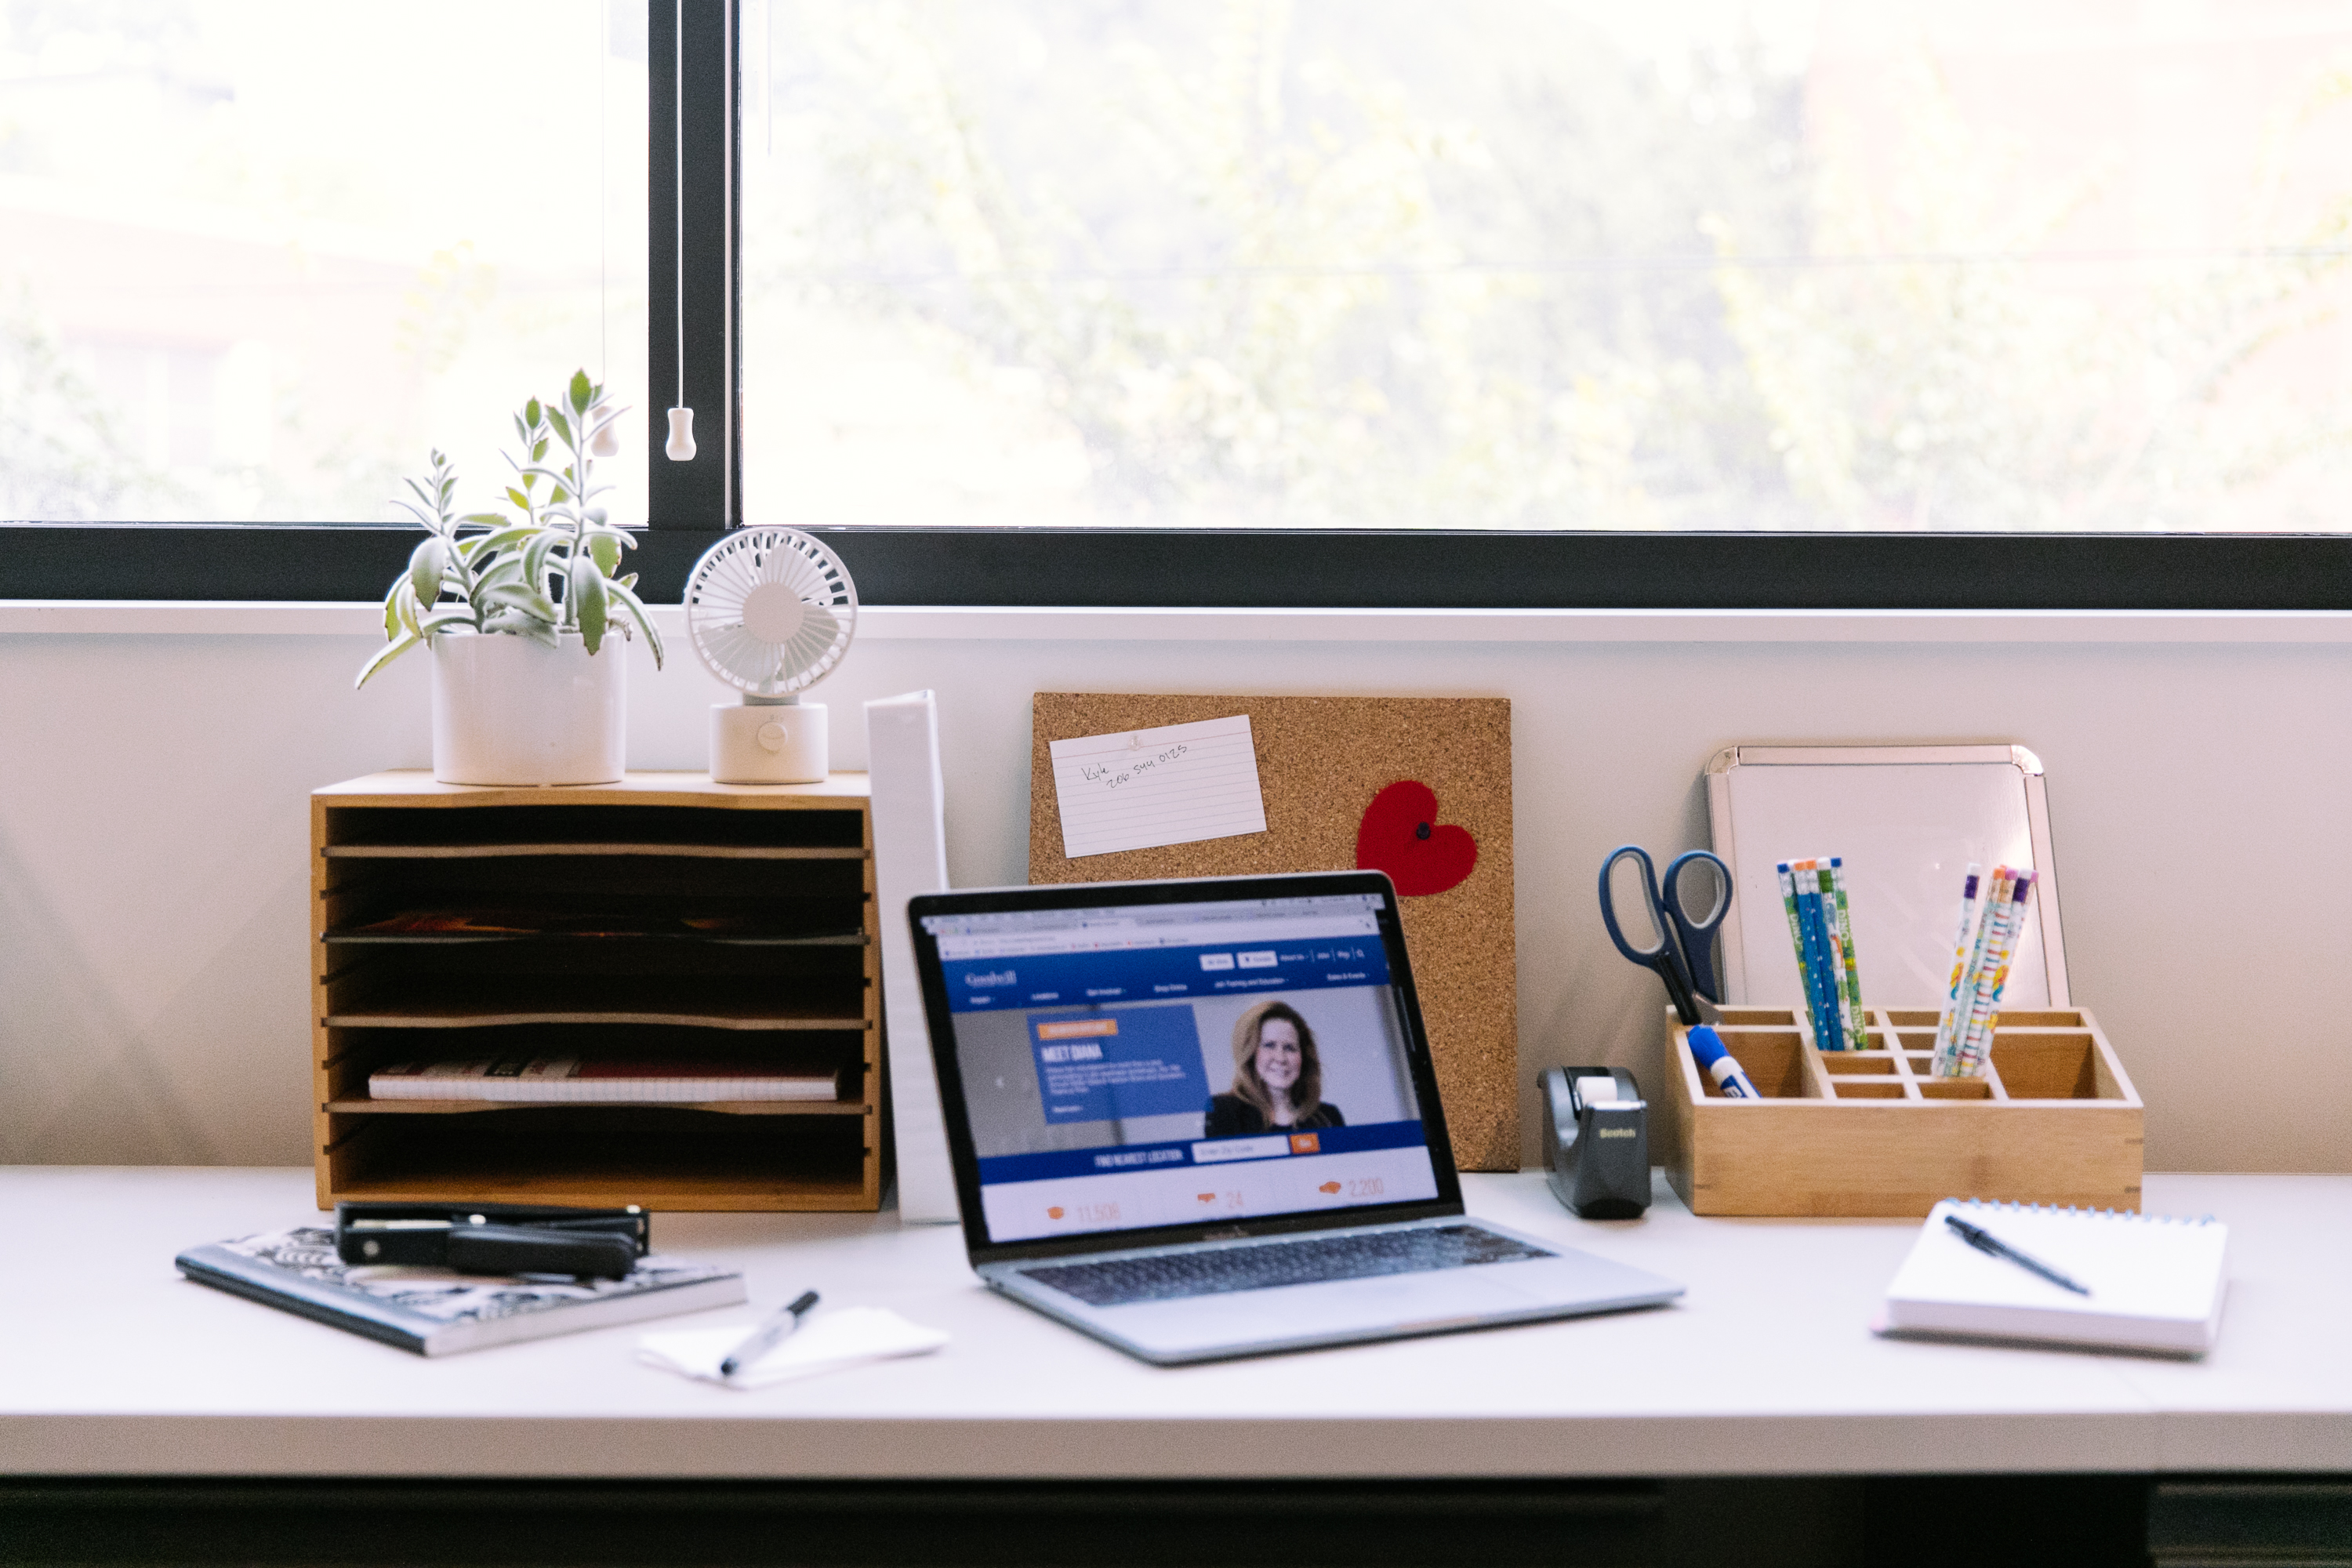 Save Money And Organize Your Work Space By Getting Some Desk Organizing  Items At Seattle Goodwill!